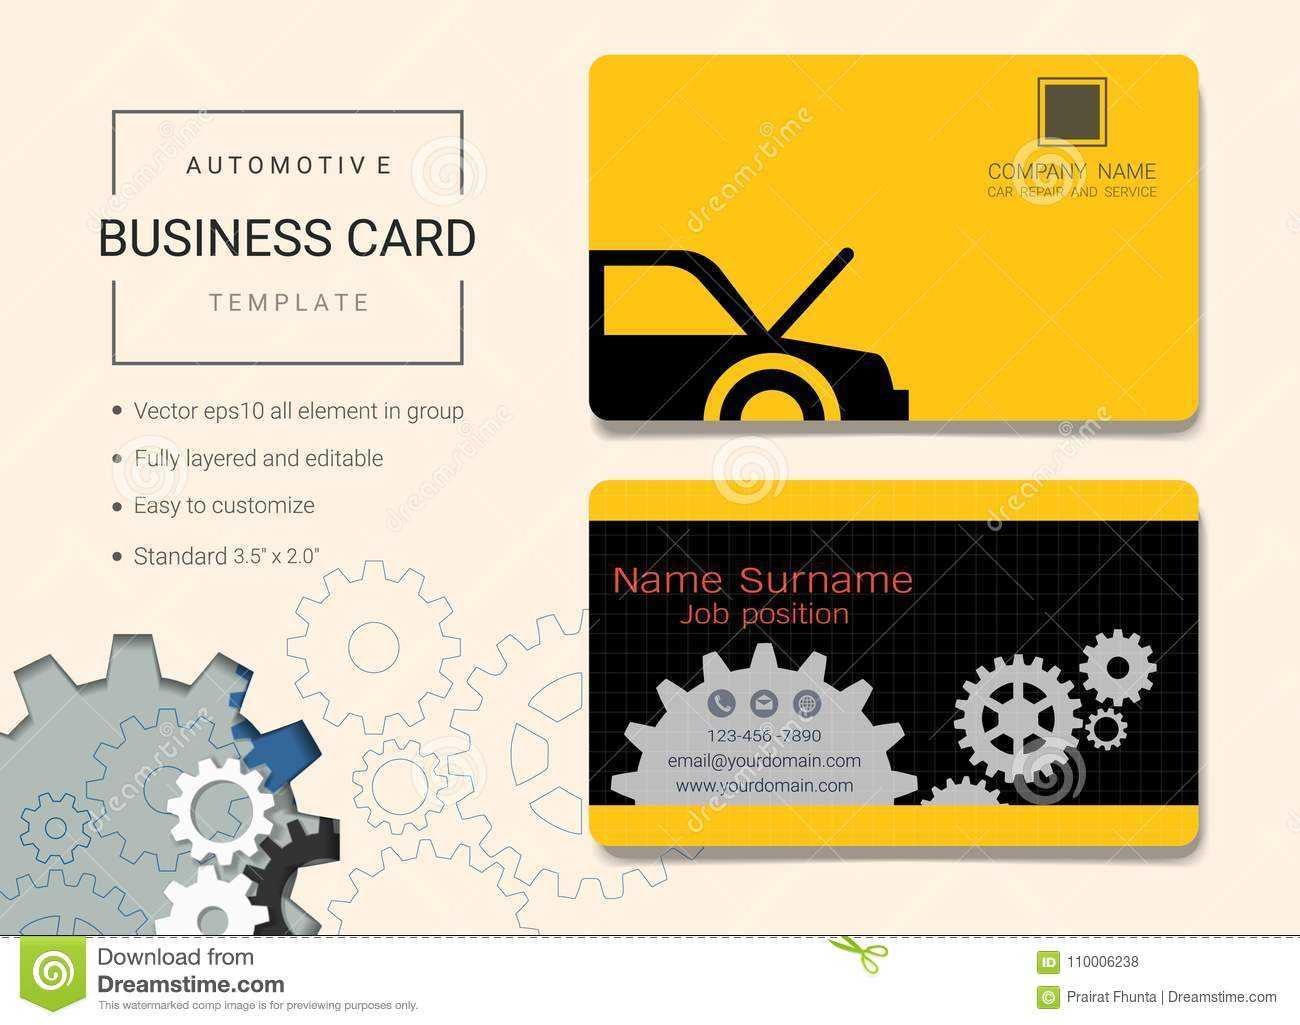 Automotive Business Card Or Name Card Template. Stock Vector Intended For Automotive Business Card Templates